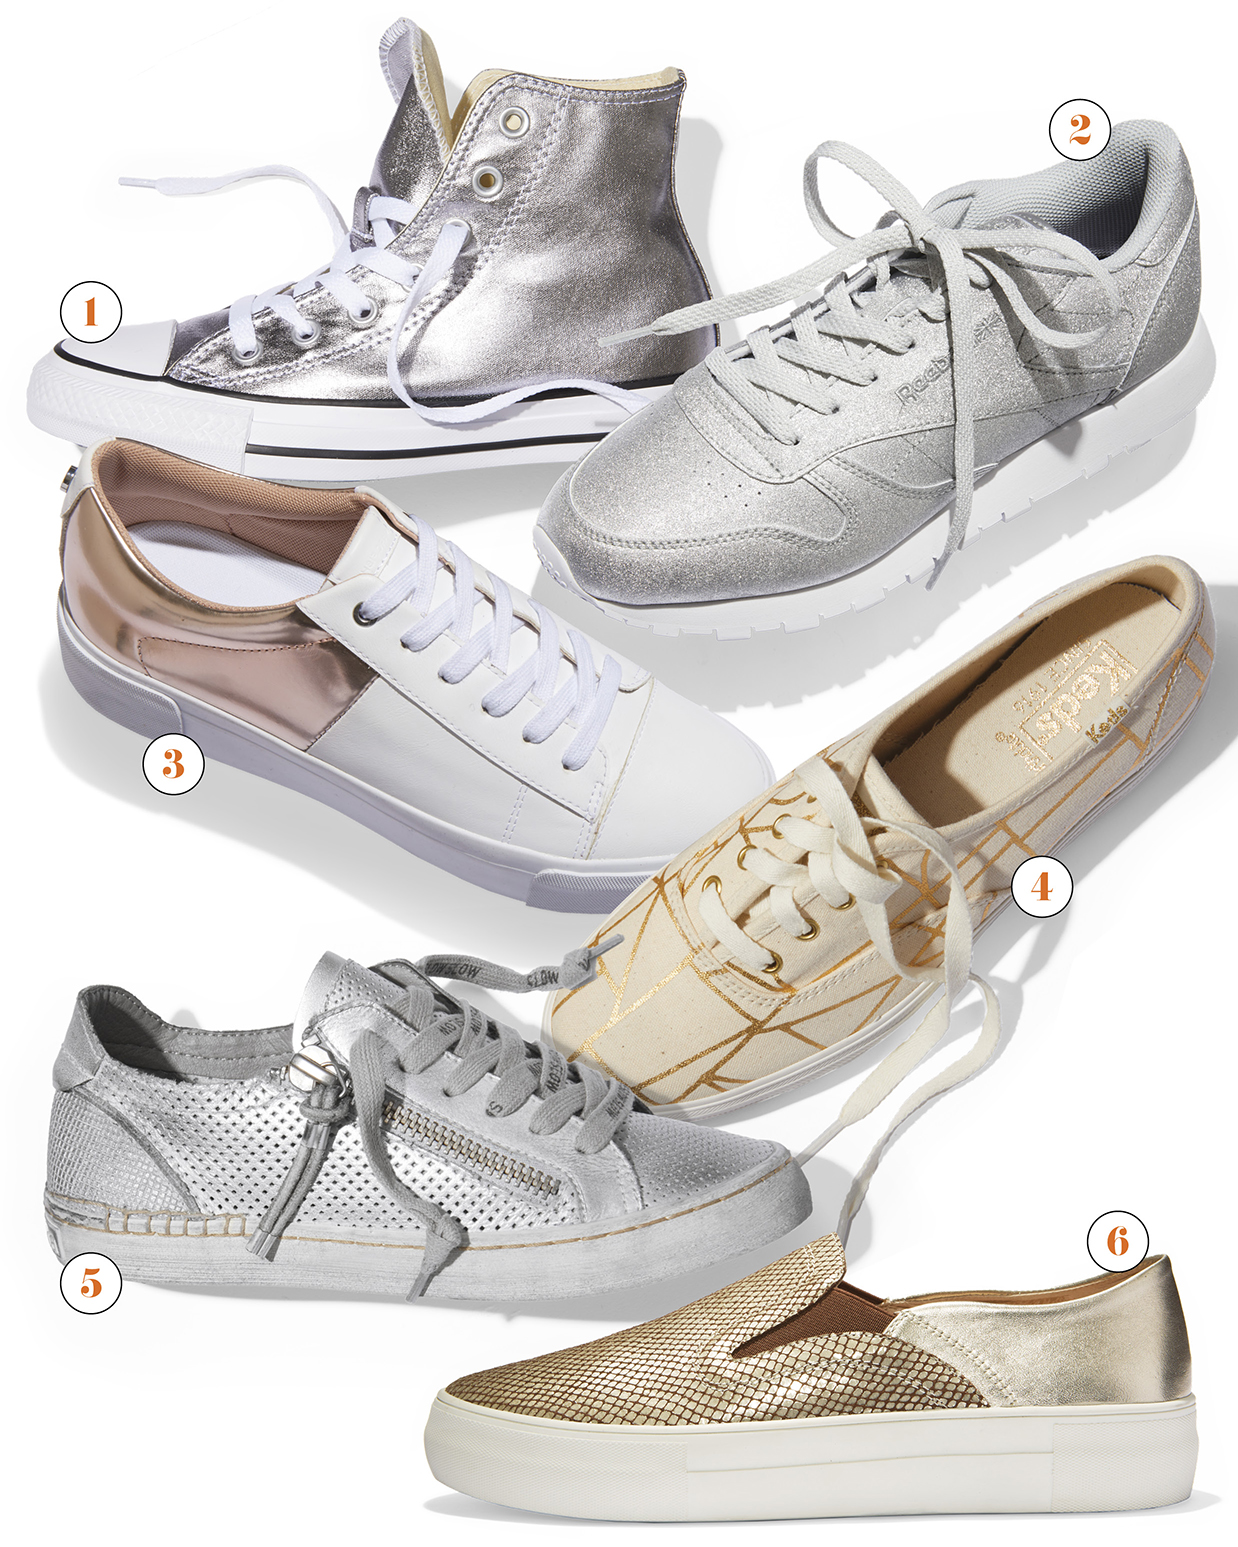 neutral metallic gold silver sneakers shoes